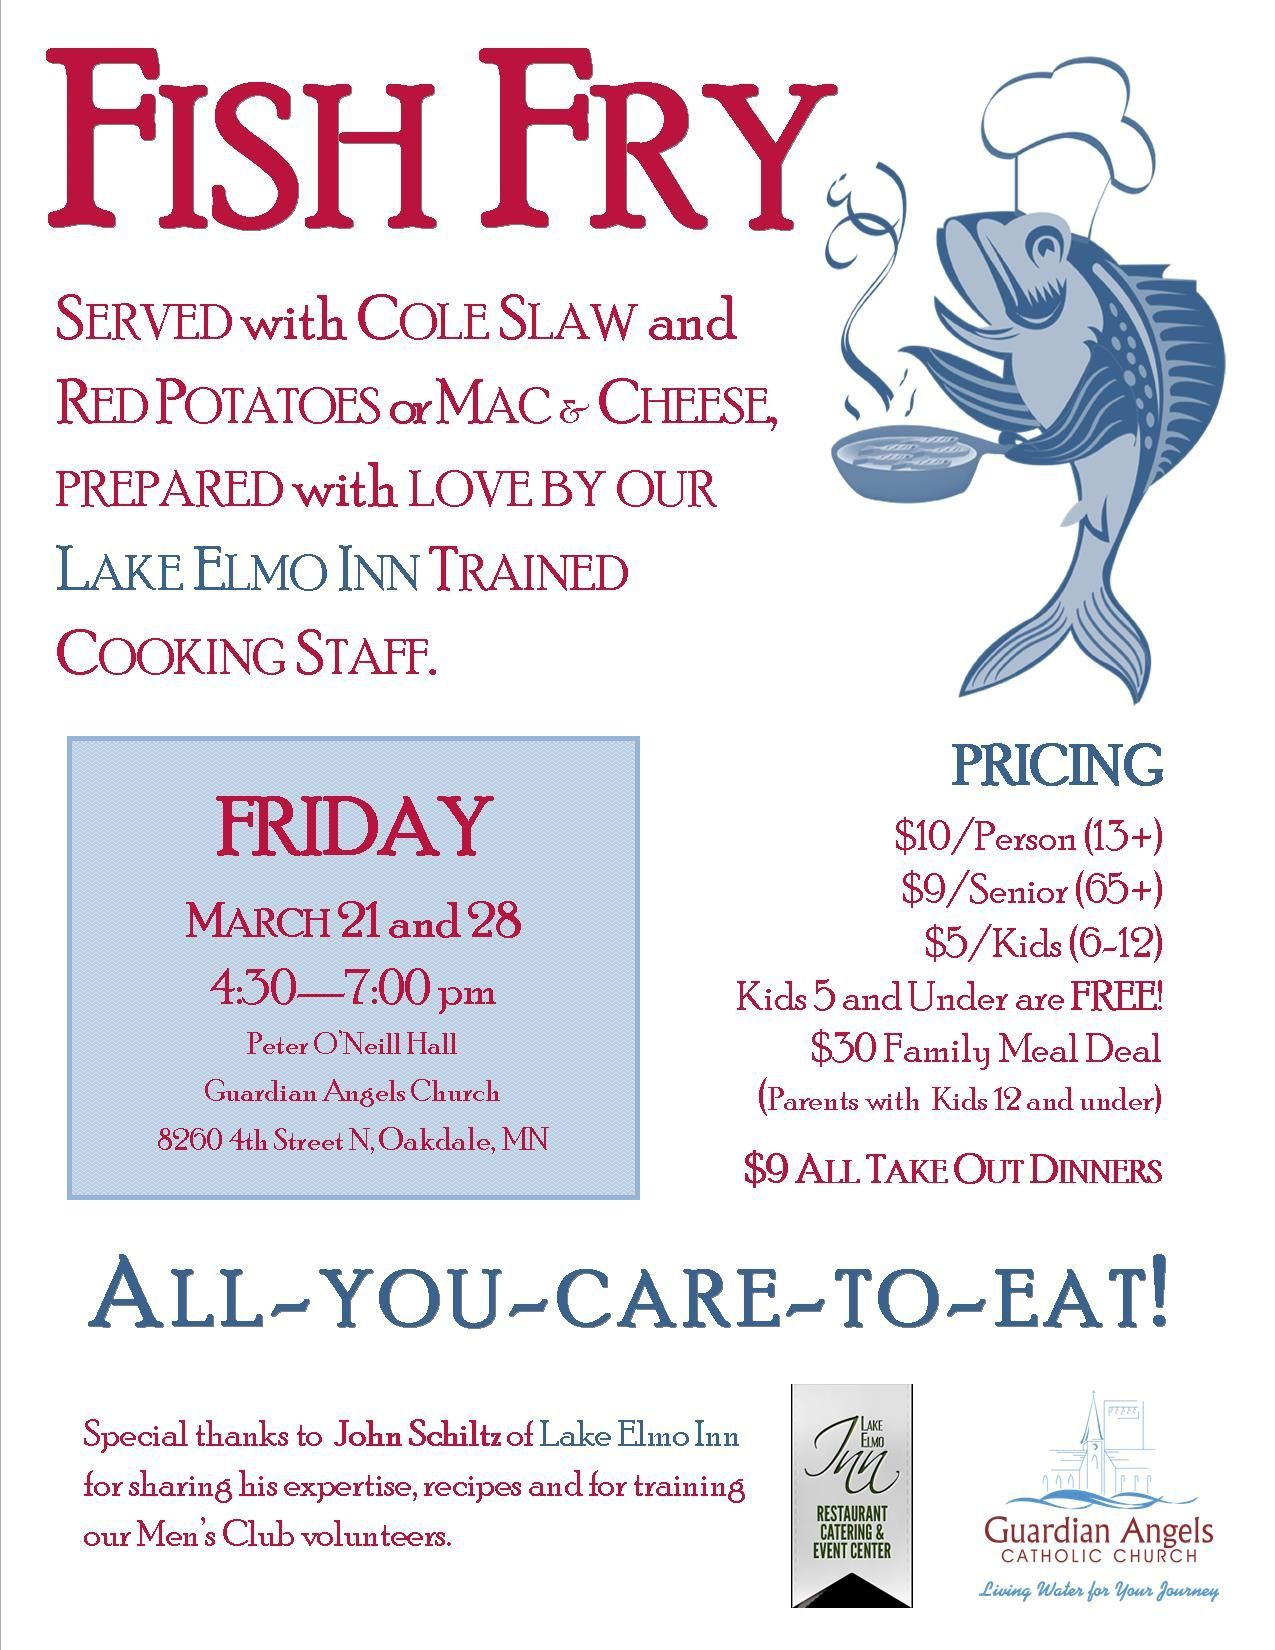 000 Simple Fish Fry Flyer Template High Def  Printable Free Powerpoint PsdFull